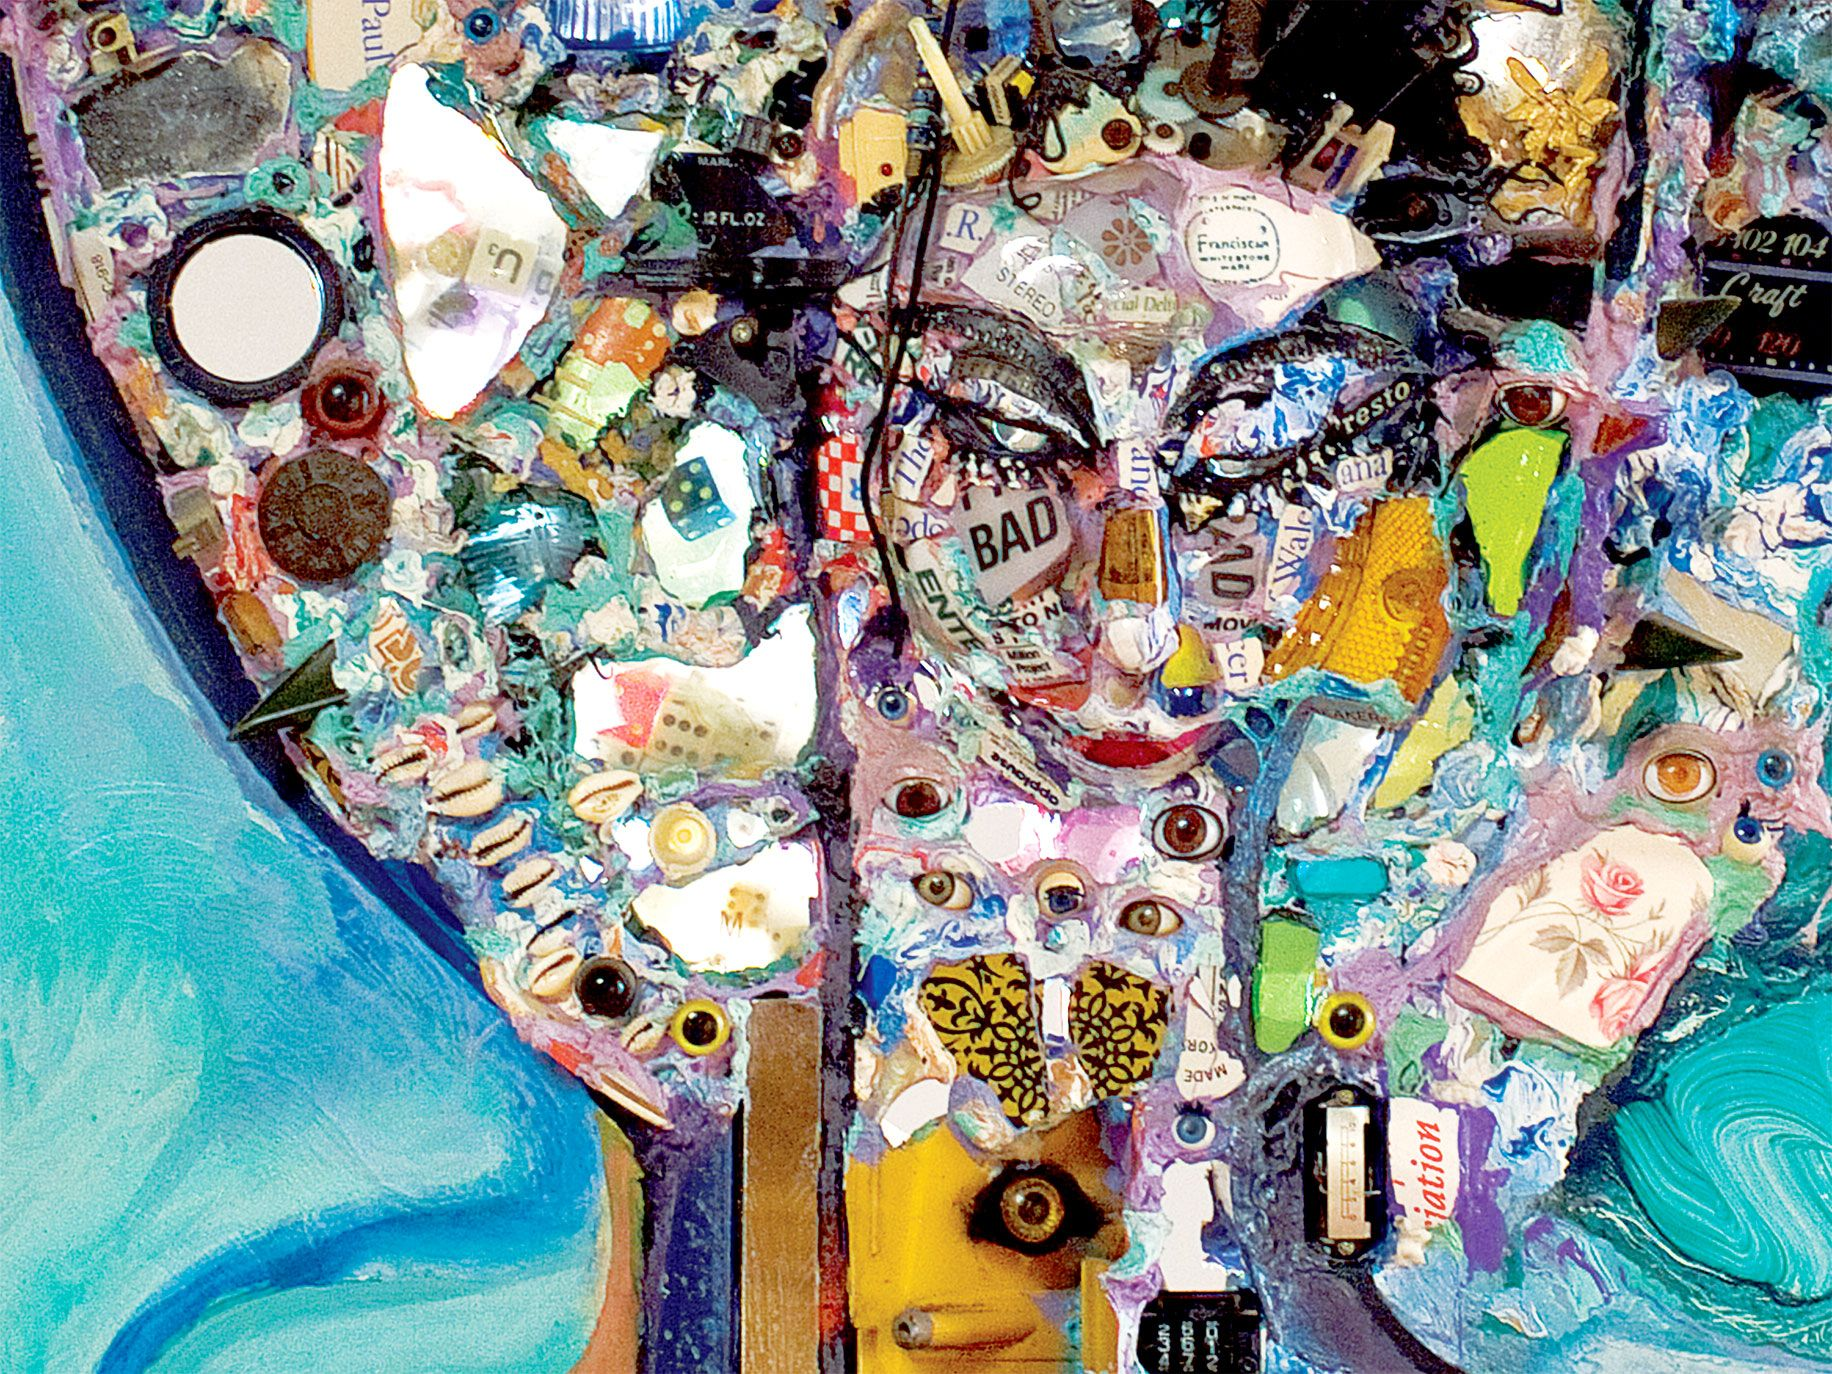 Assemblage artist Timothy Washington is a contemporary of David Hammons and Betye Saar. He combines sculpture, painting, and drawing to create striking abstractions of human figures.